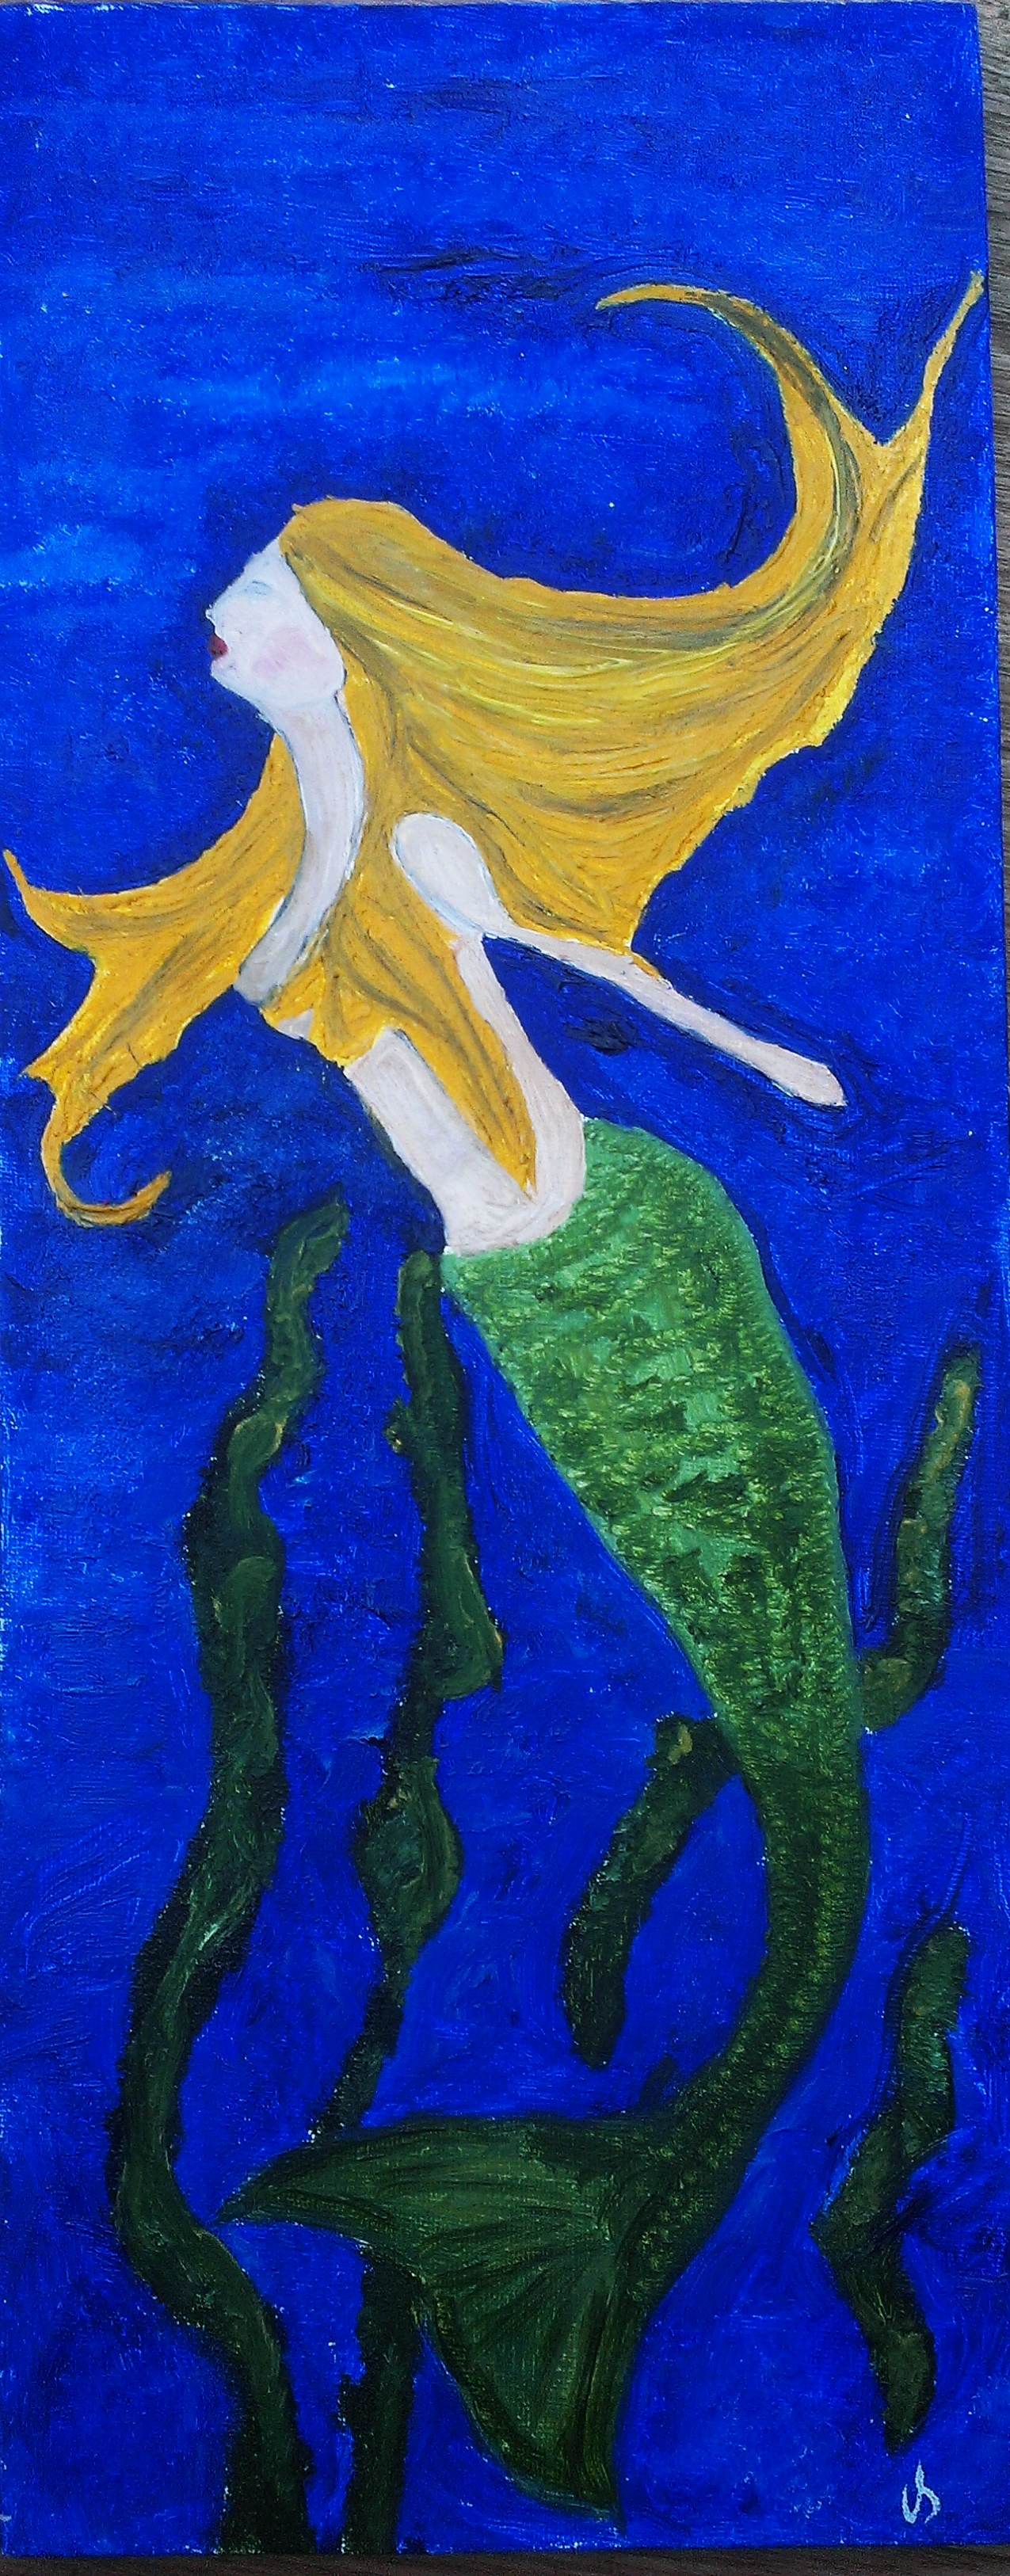 MERMAID IN OIL PAINTS ORIGINAL PAINTING